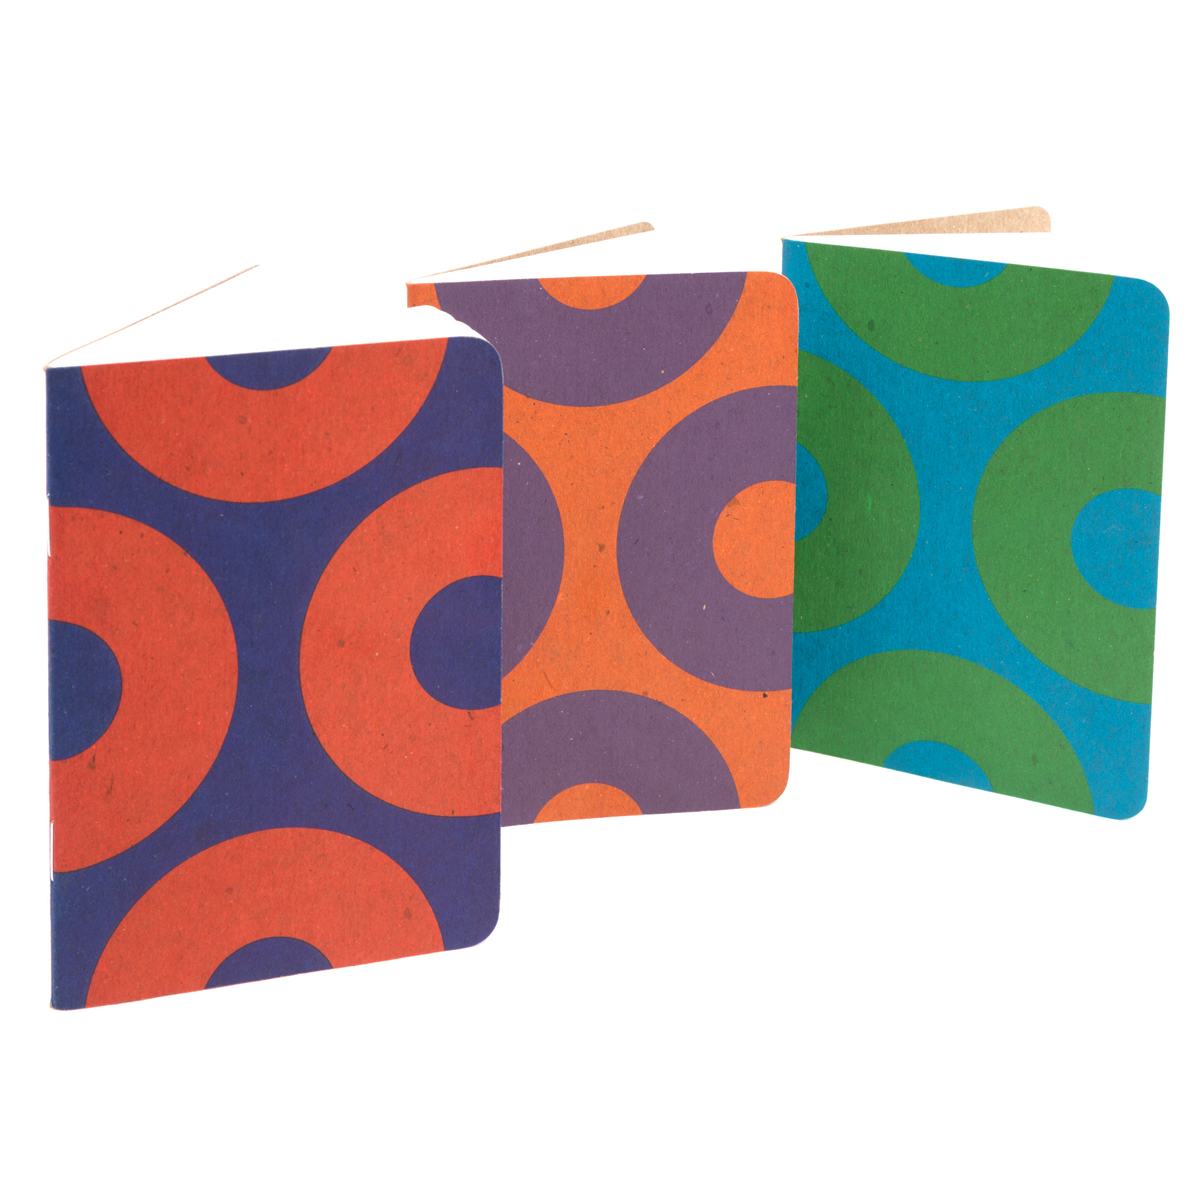 Fishman Donuts Journal/Setlist Pad (Set of 3)